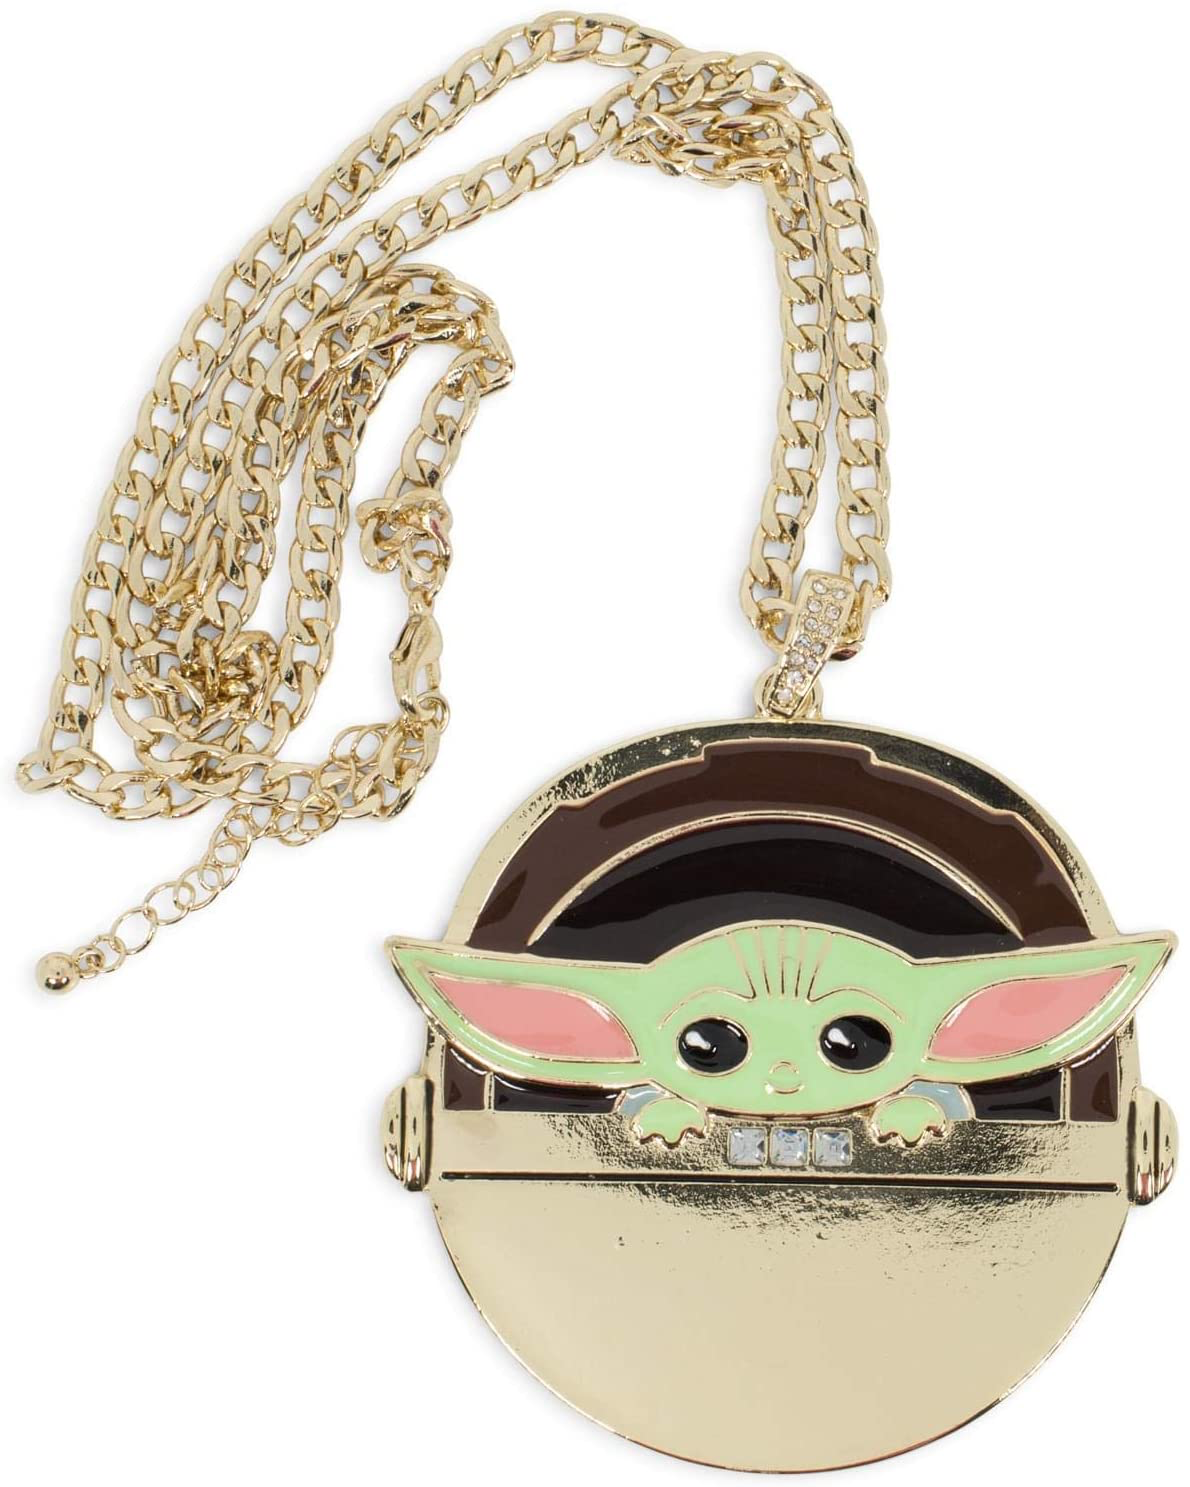 TM The Child in Gold Carriage Pendant Necklace 3